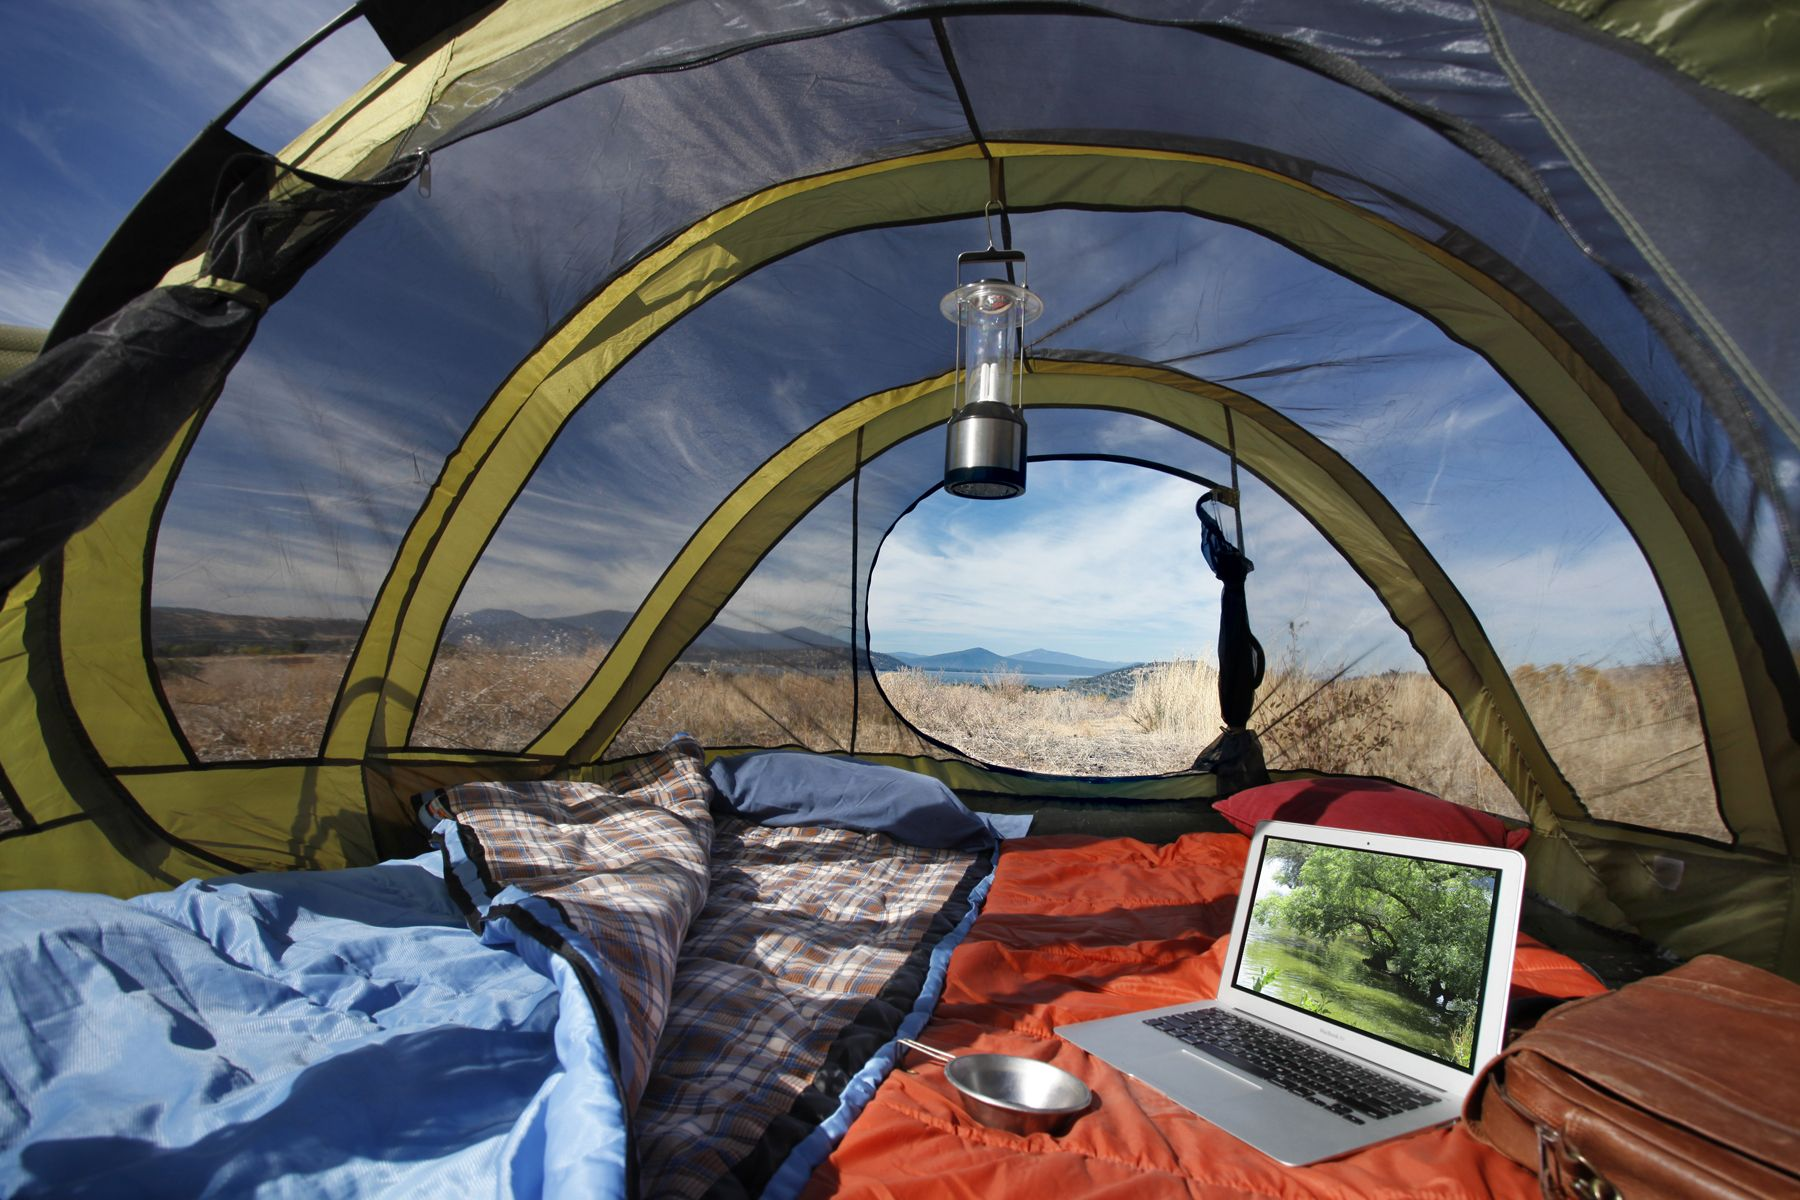 See the outdoors from inside - stargazing with Pinnacle Tents Pop Up Tent & See the outdoors from inside - stargazing with Pinnacle Tents Pop ...